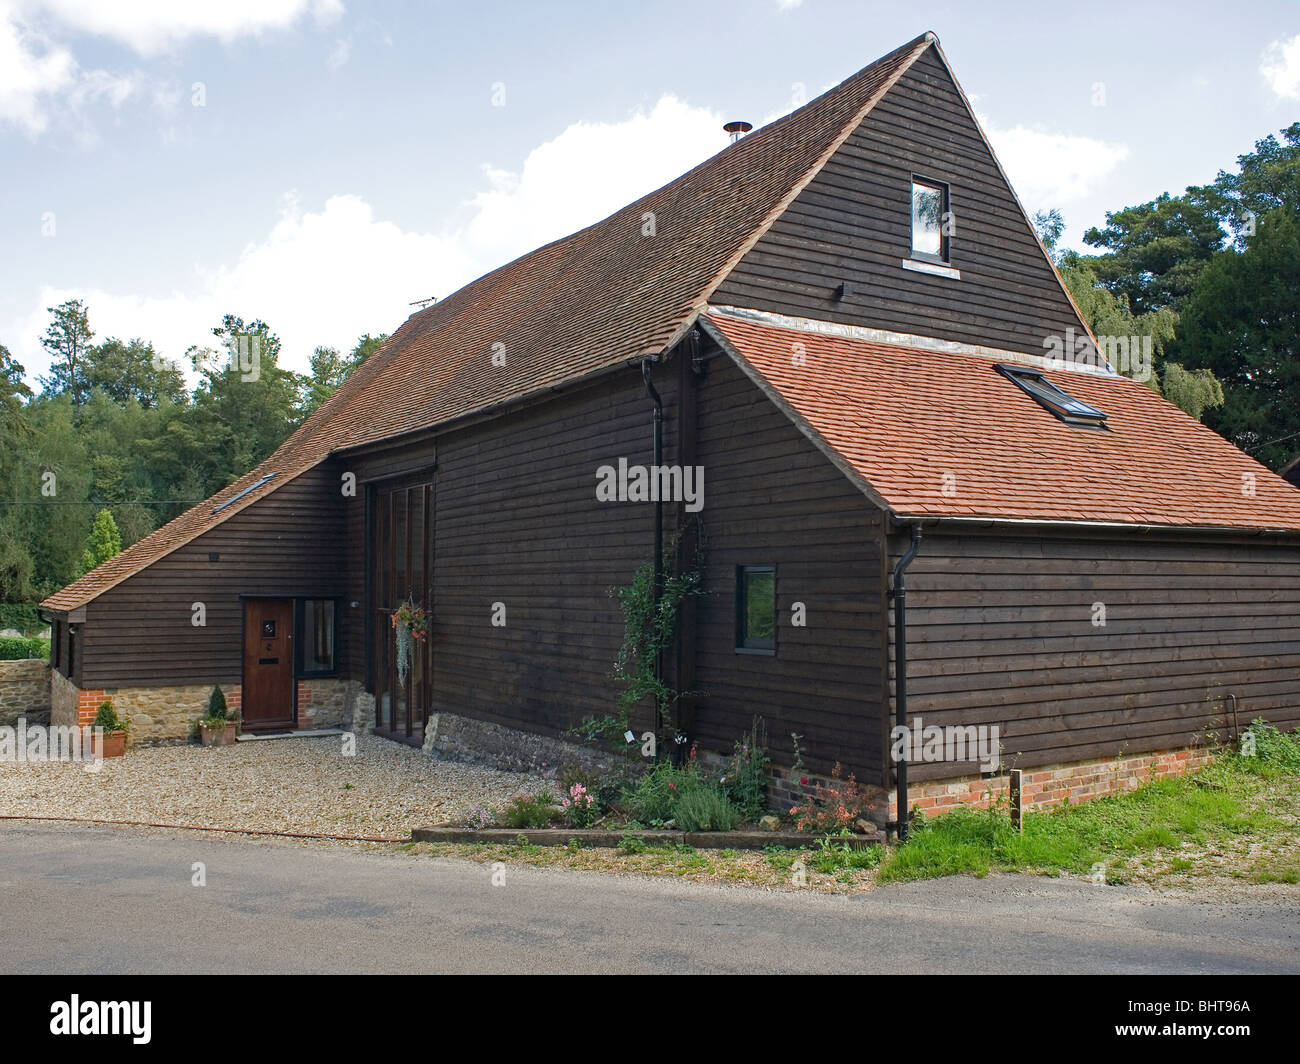 Barn Conversion exterior of a barn conversion with dark wood cladding stock photo